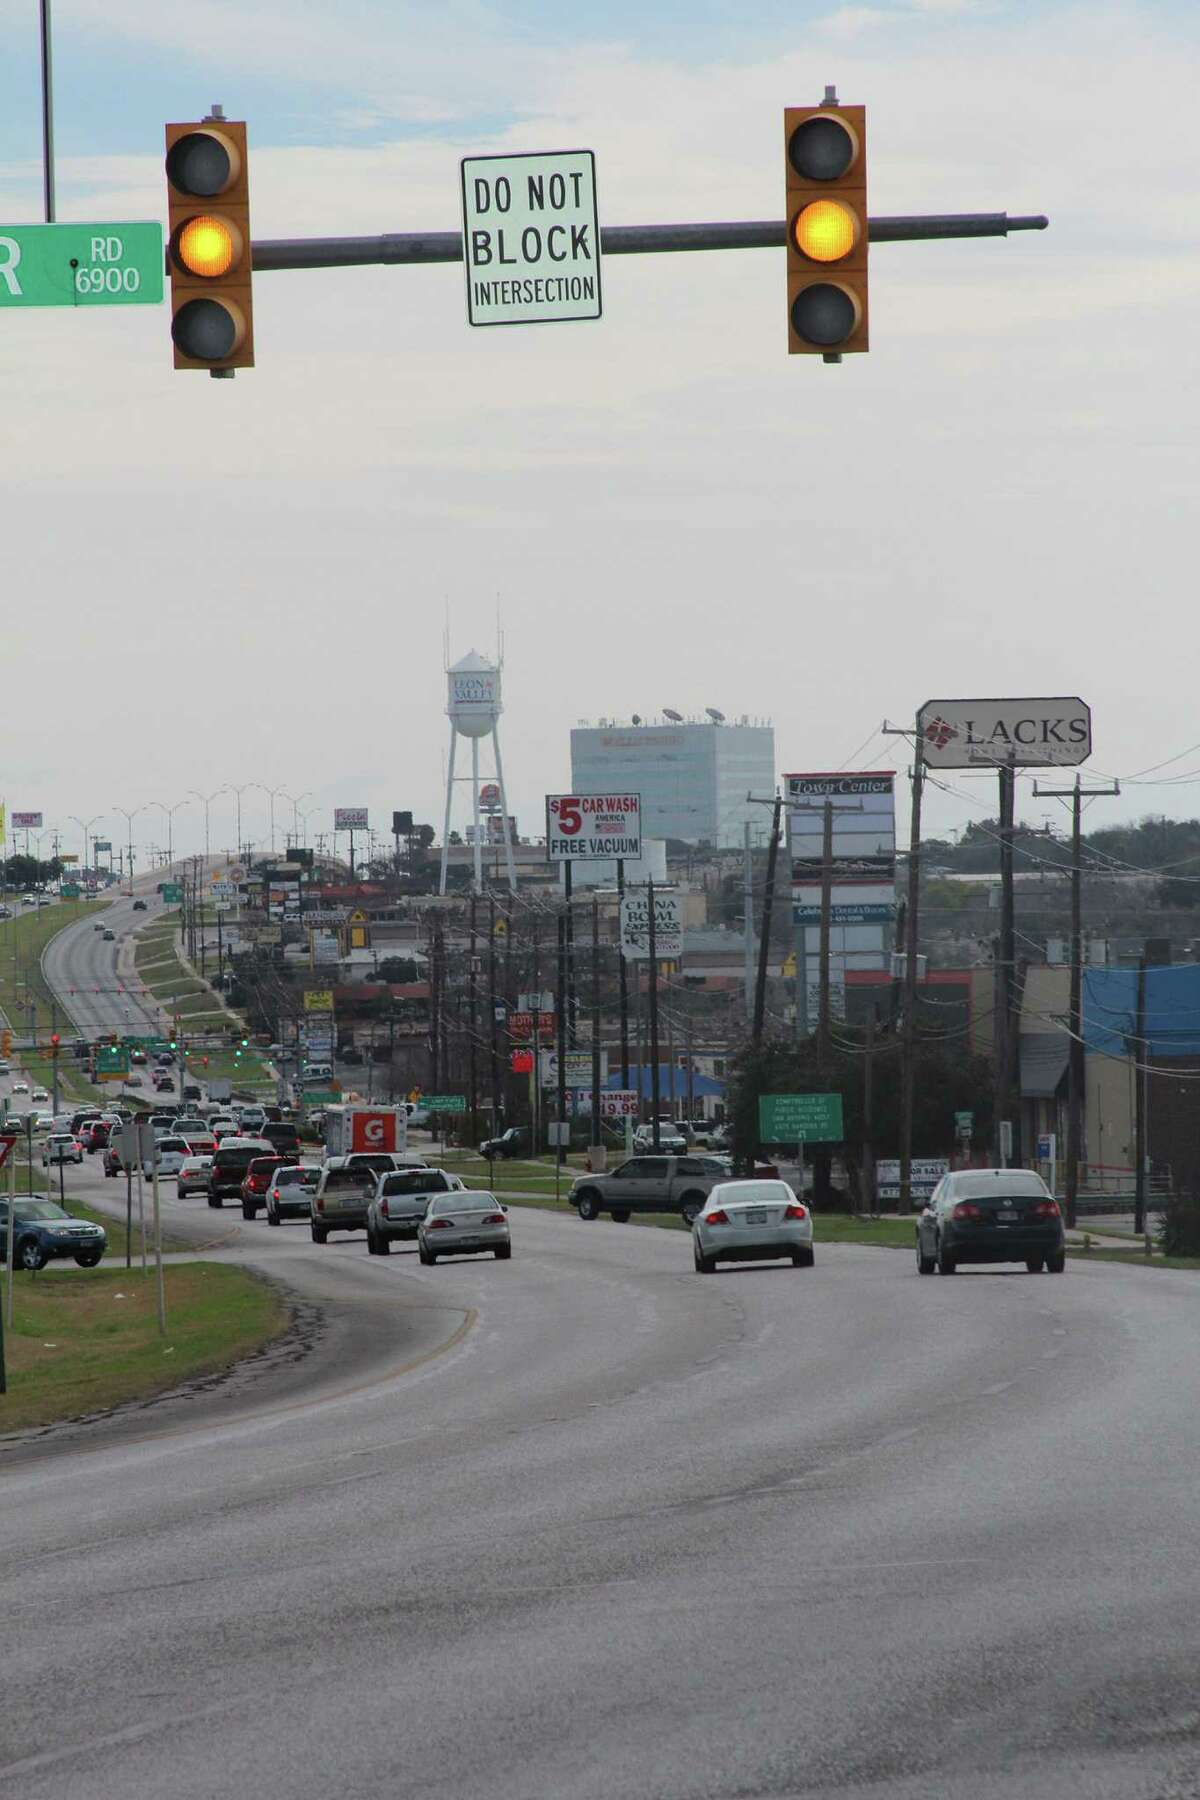 Leon Valley is making an effort to synchronize its traffic lights on Bandera Road to coordinate with San Antonio's signals and ease the thoroughfare's notorious congestion.